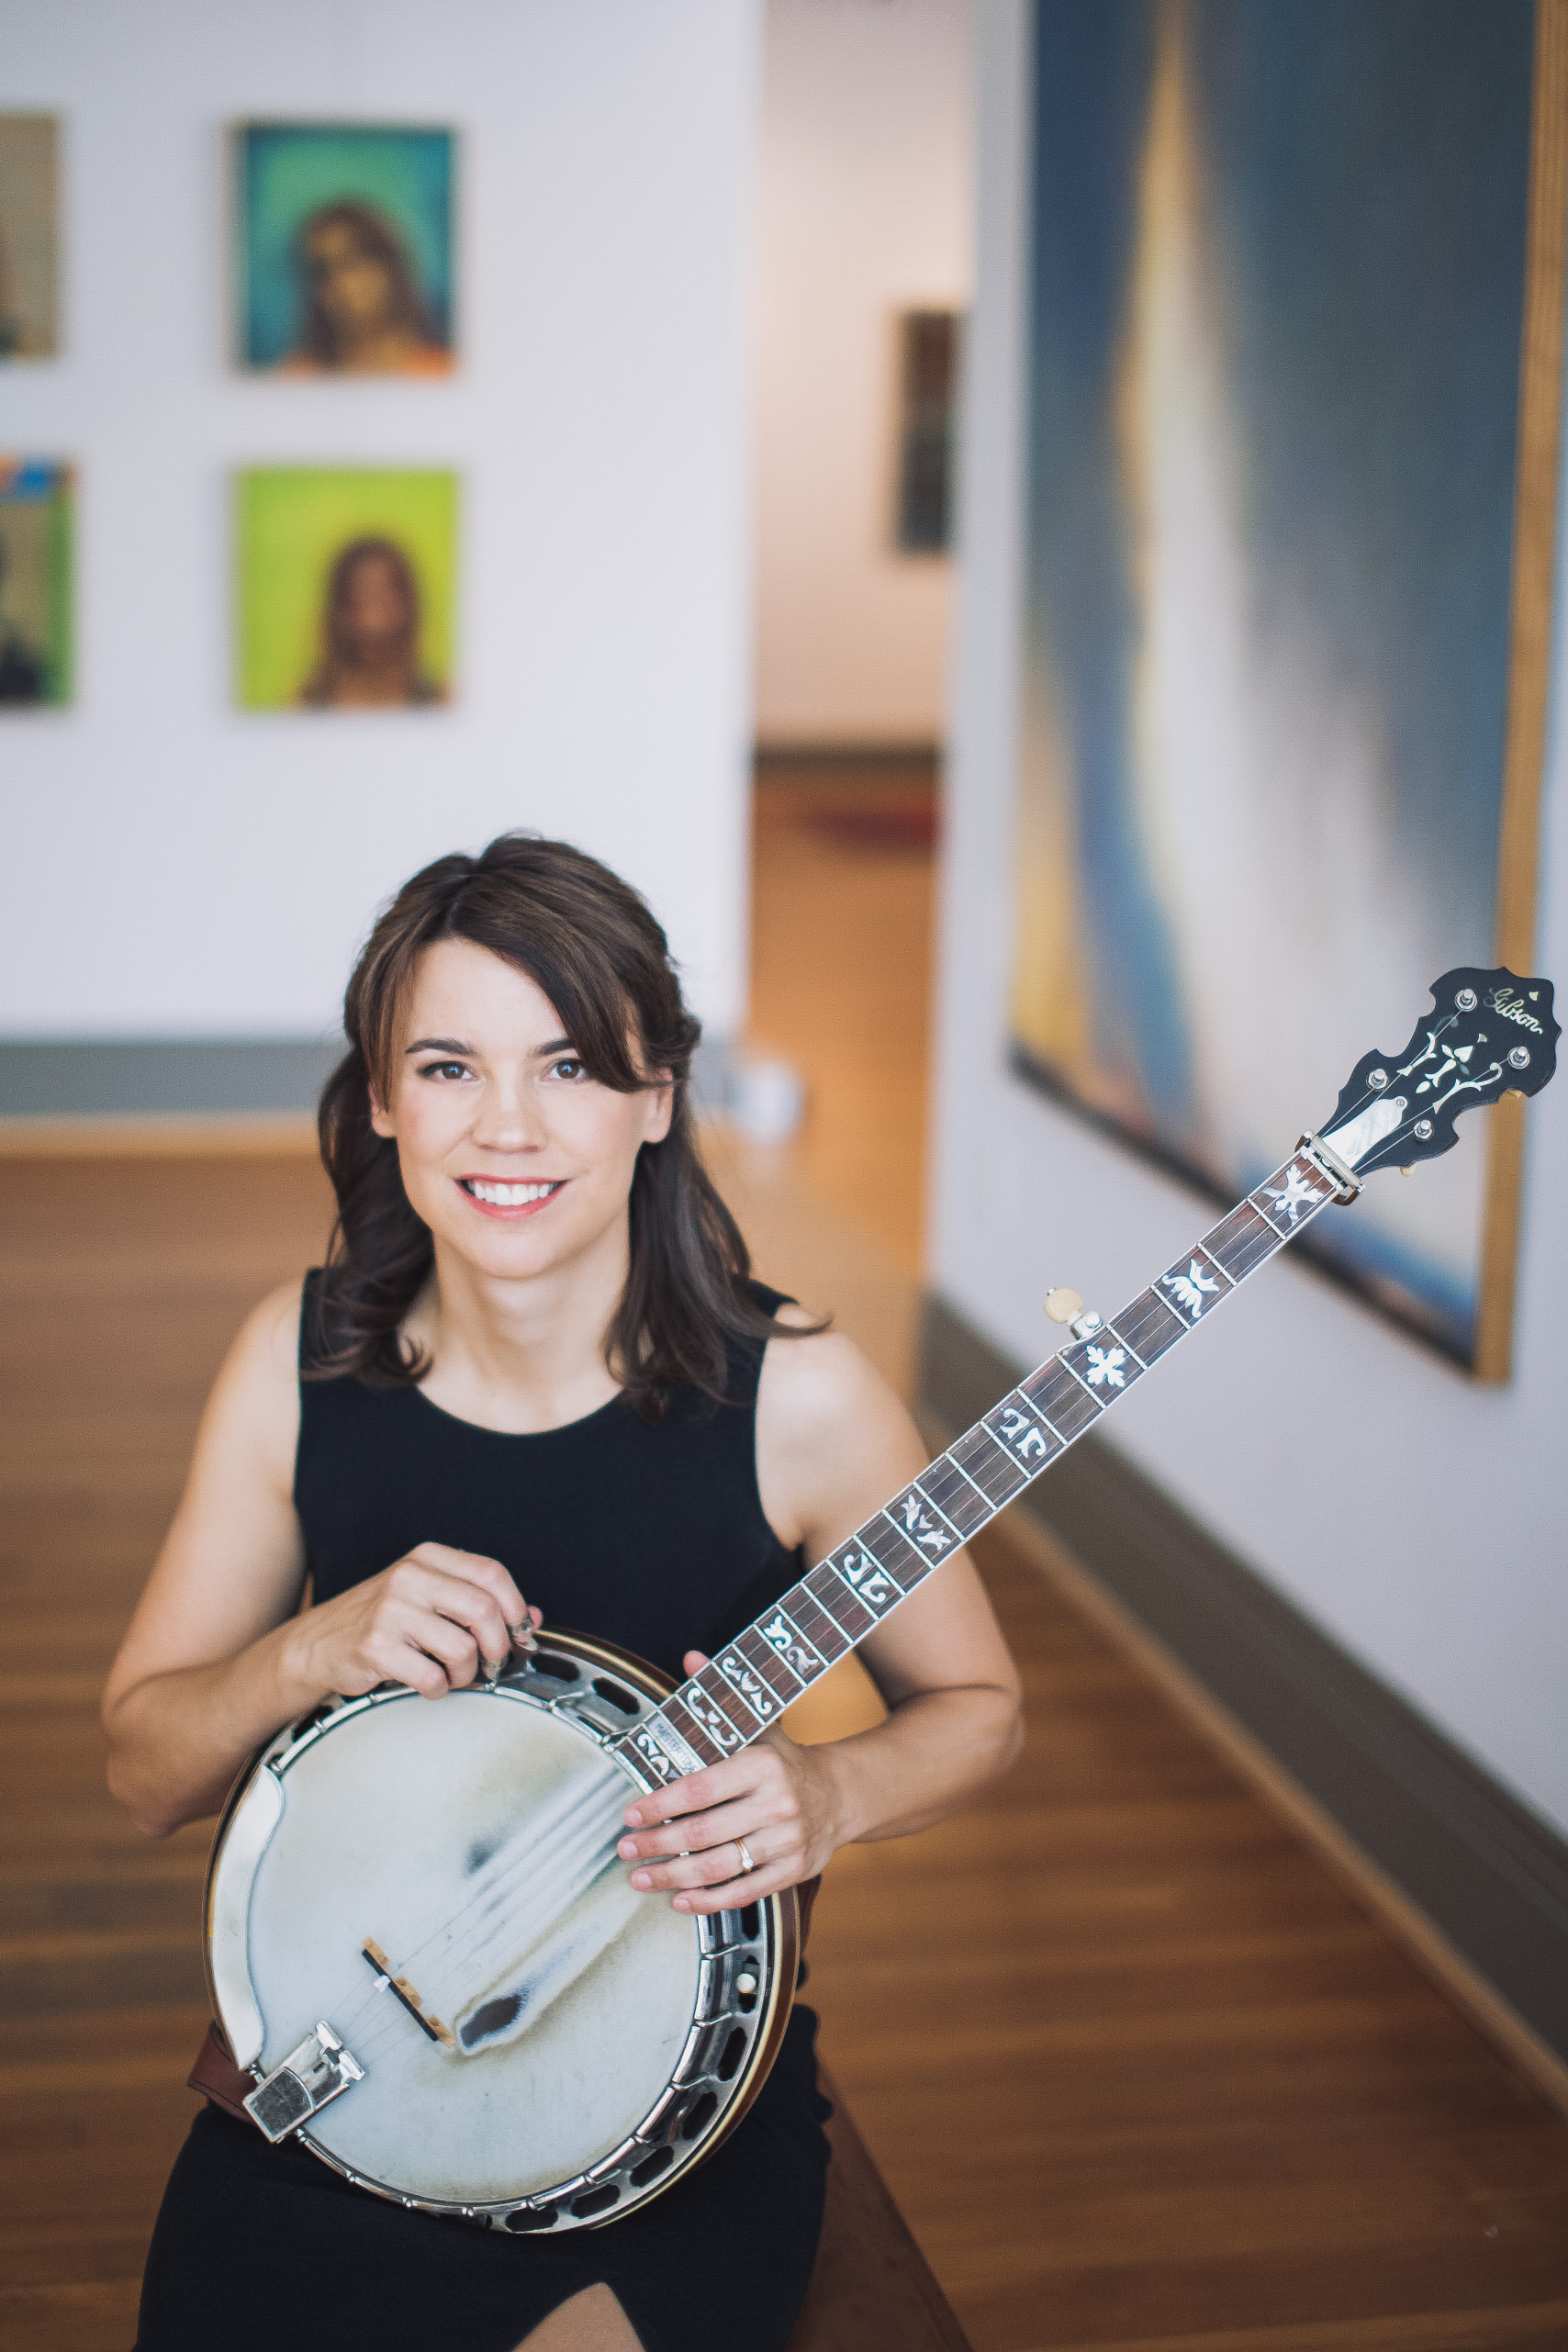 Boreal Bluegrass on the Banjo | Northern Wilds Magazine